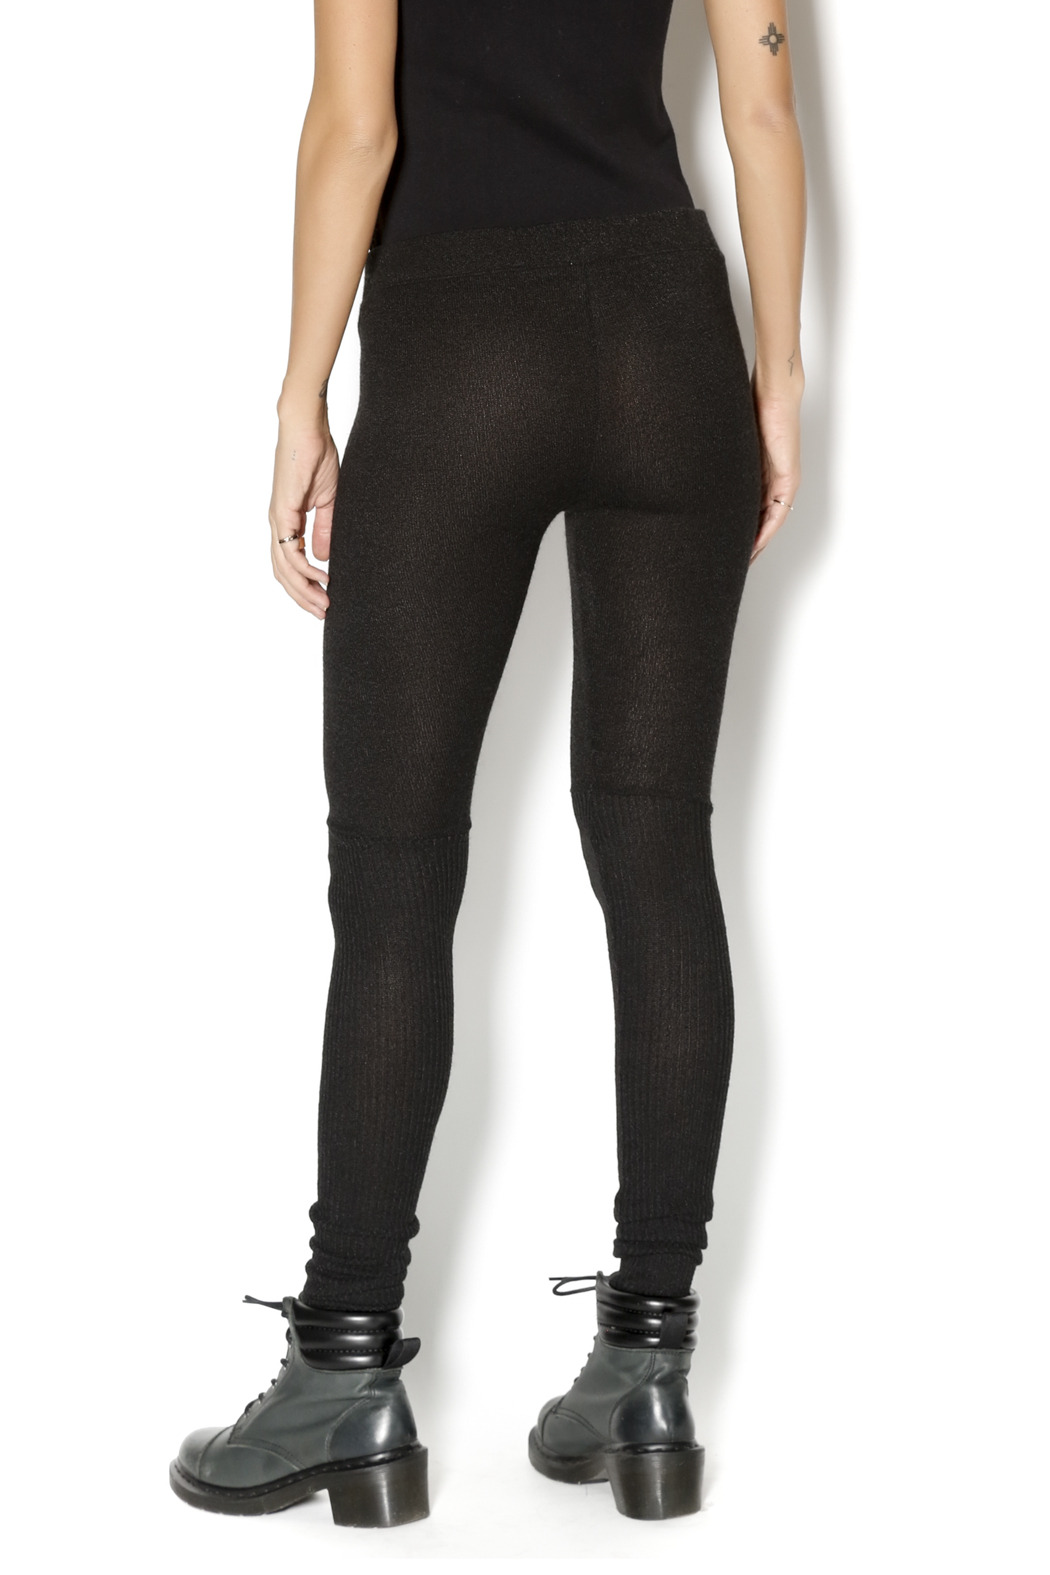 M. Rena Tummy Tuck Leggings - Back Cropped Image